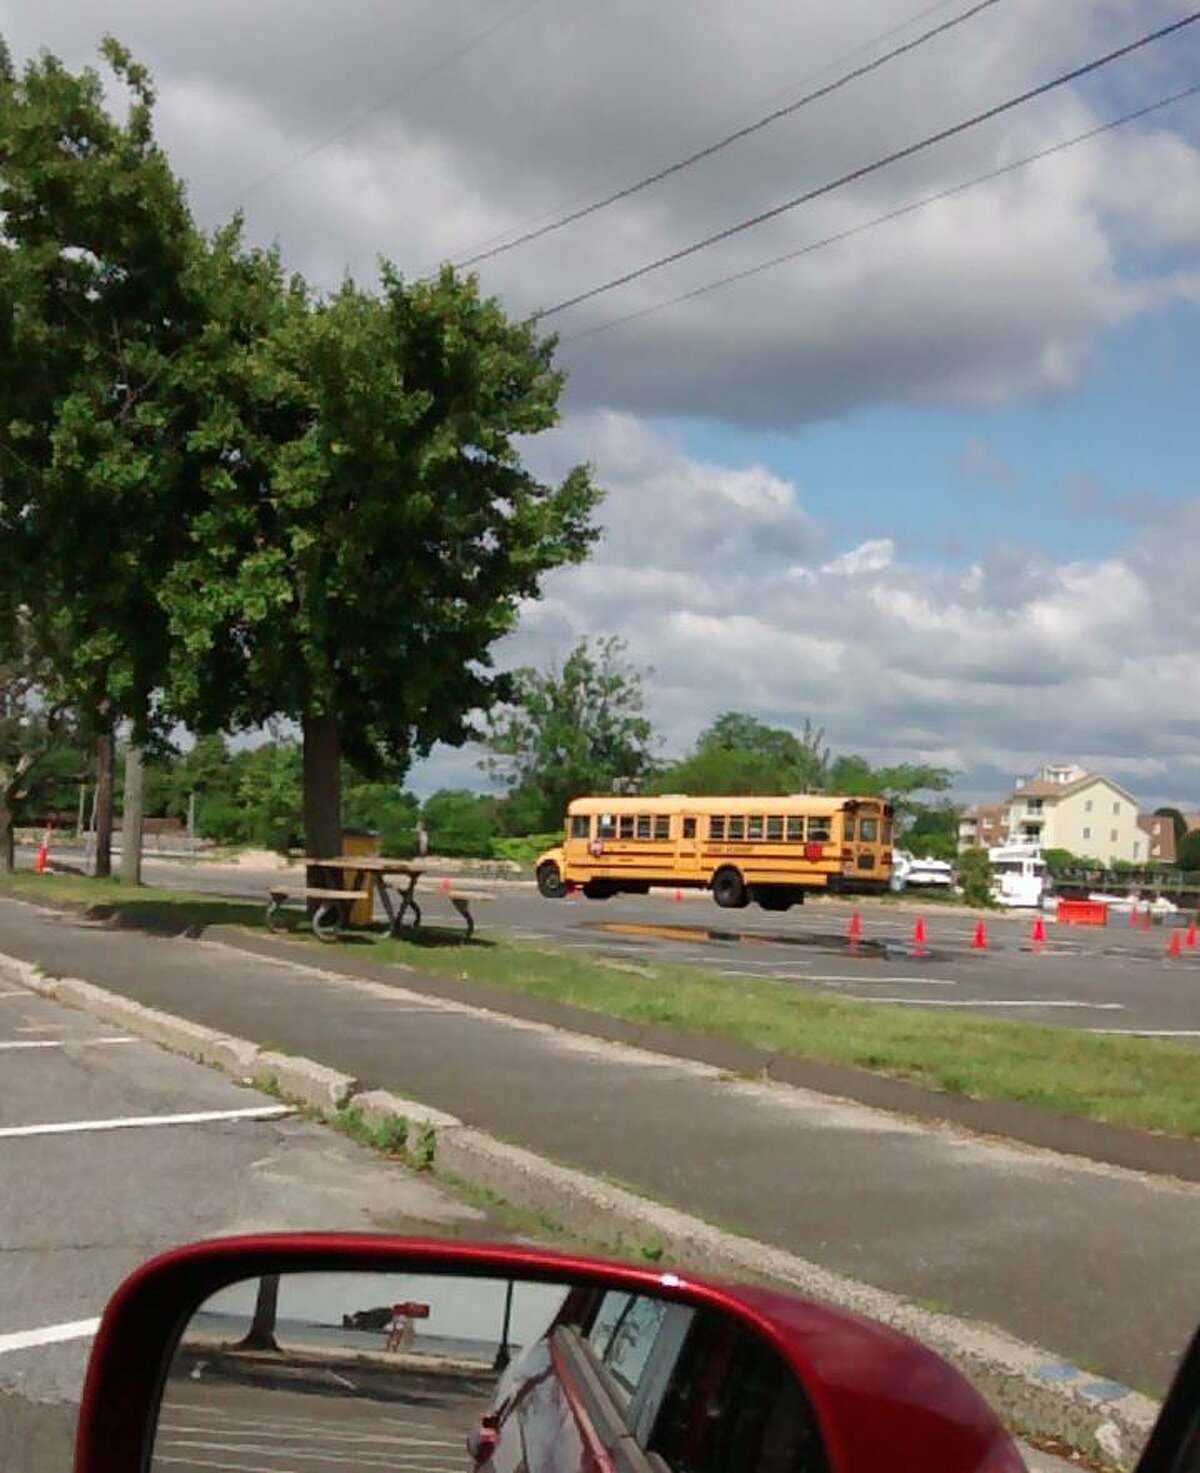 A school bus in the parking lot at Cummings Beach.